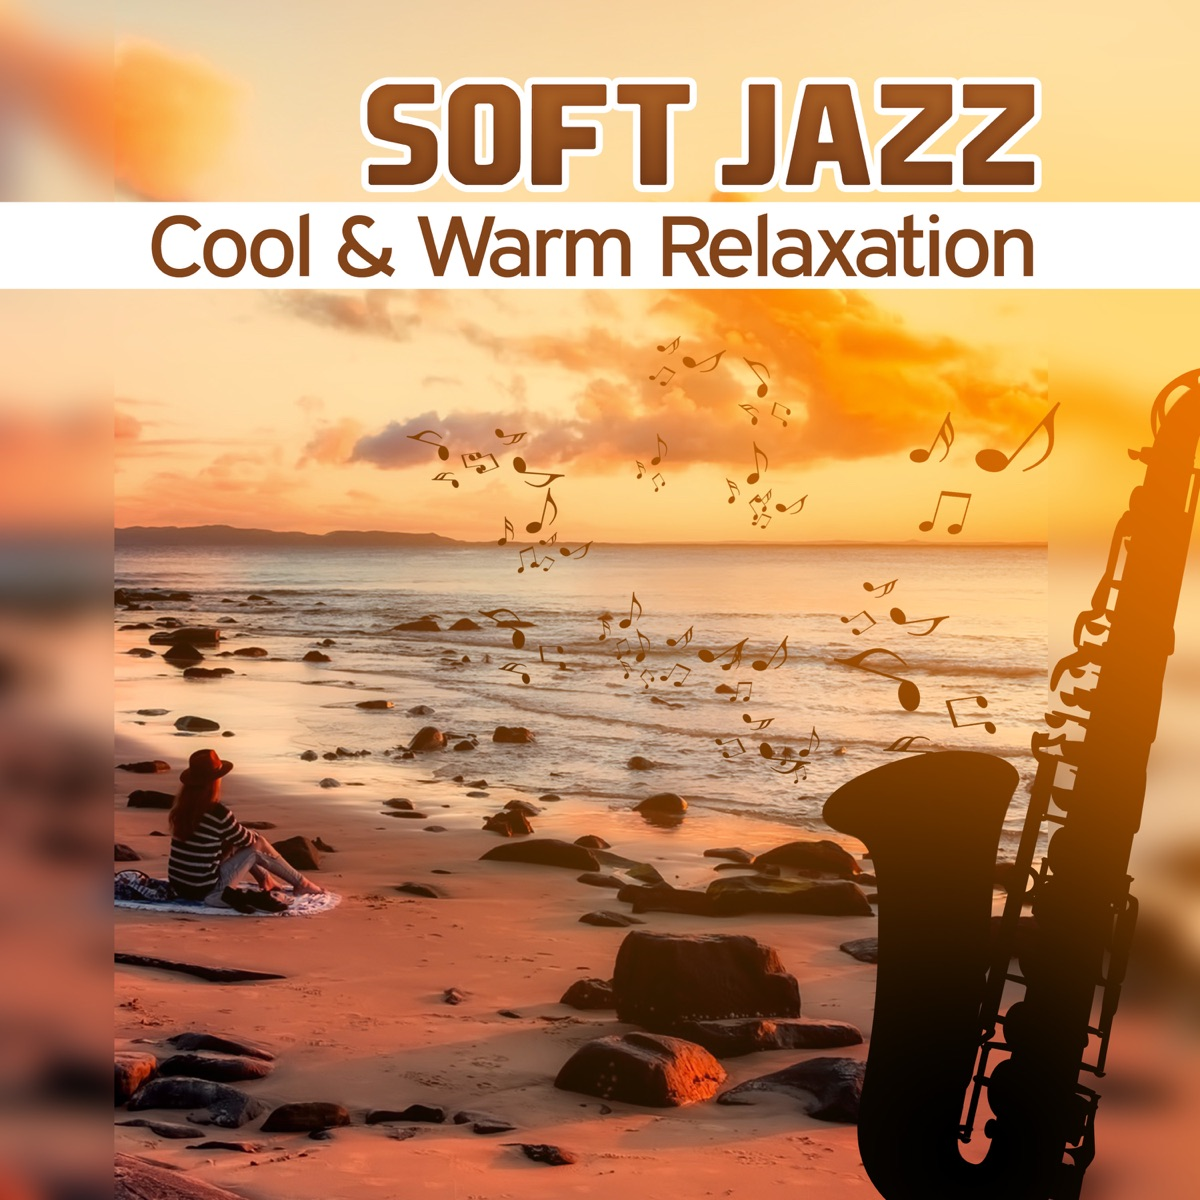 Soft Jazz: Cool & Warm Relaxation – Smooth Sensual Background Music